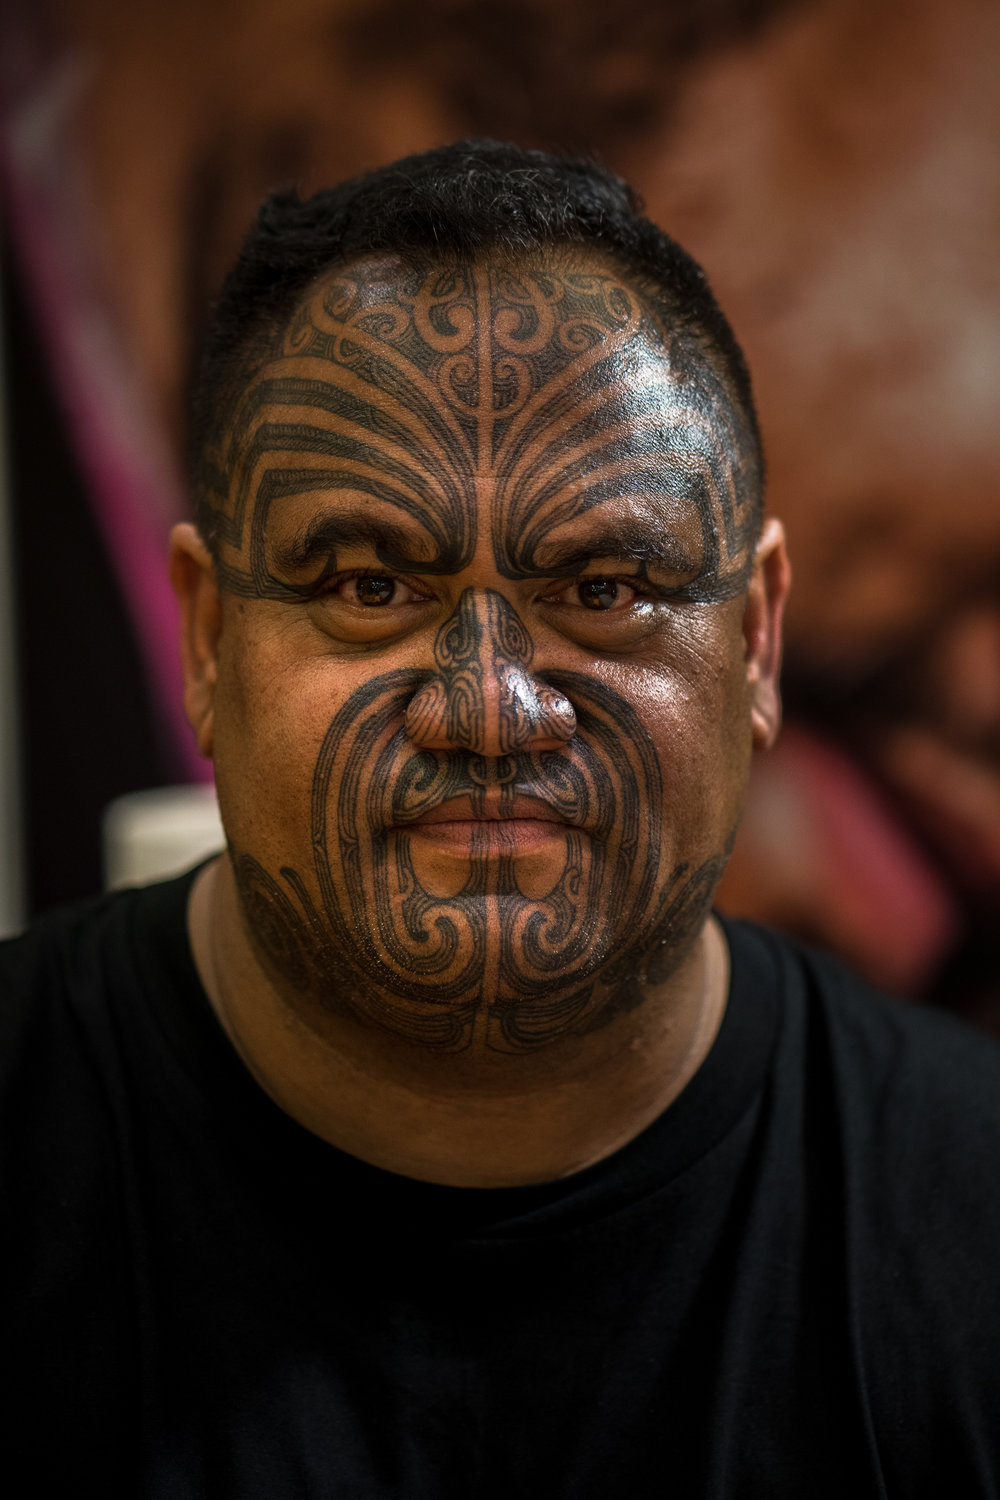 Katz Maihi , Māori designer, carver, and tattoo artist.